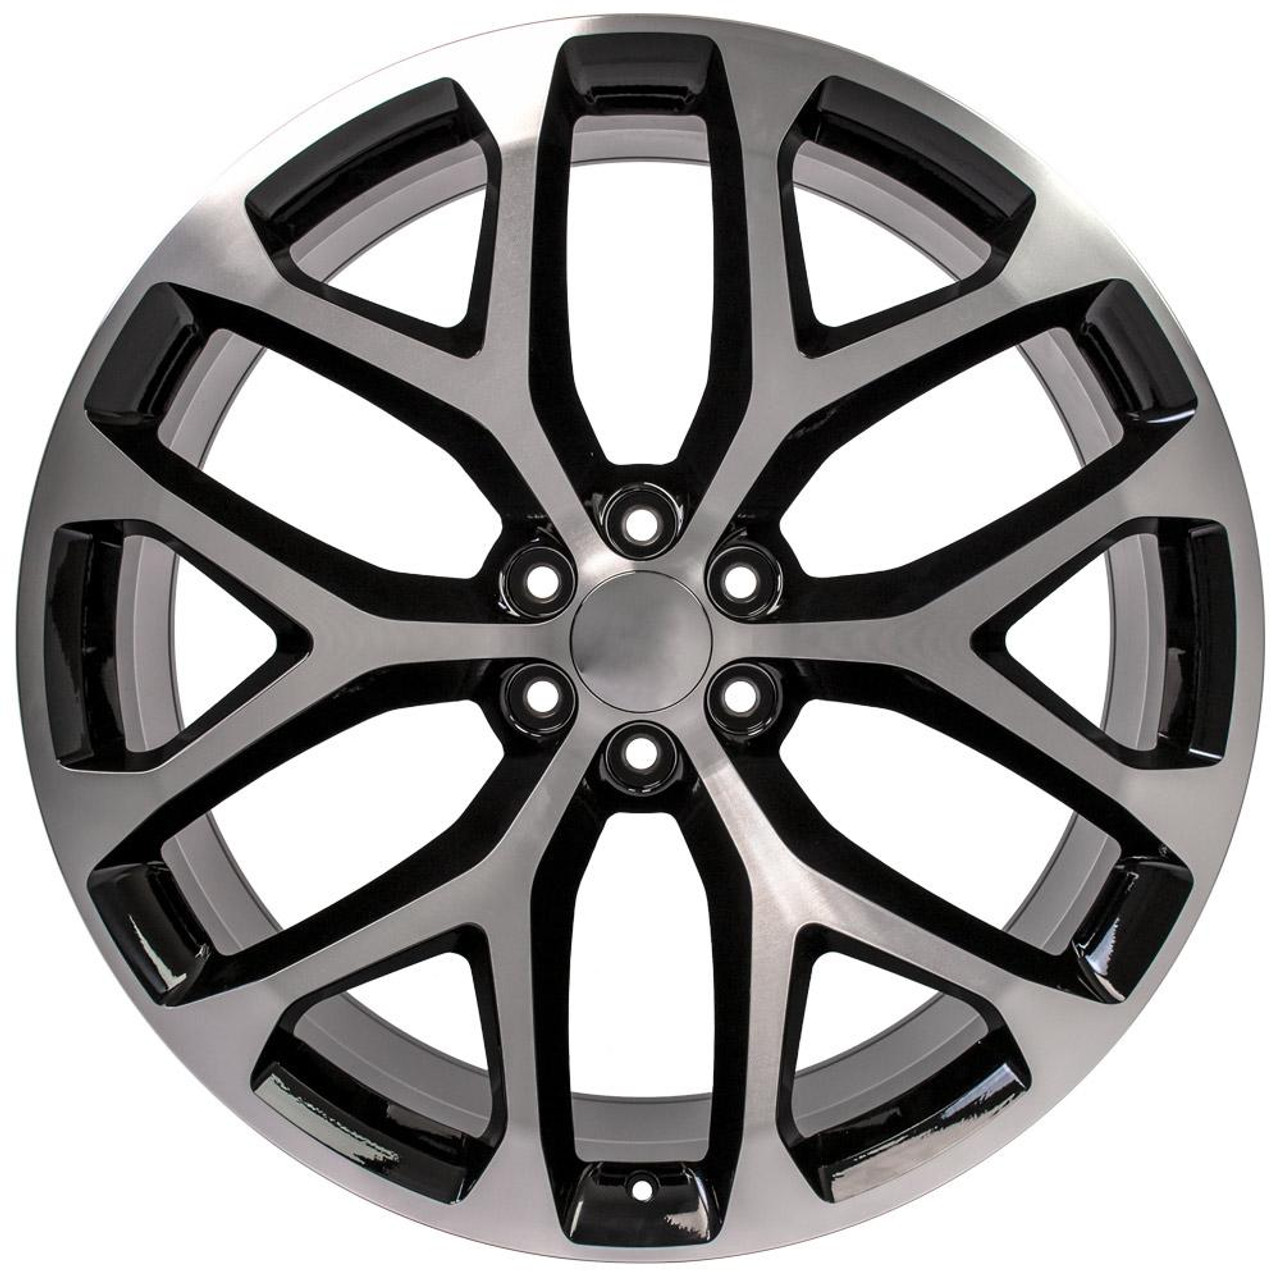 """Black and Machine 26"""" Snowflake Wheels for GMC and Chevy 1500 Trucks and SUVs"""